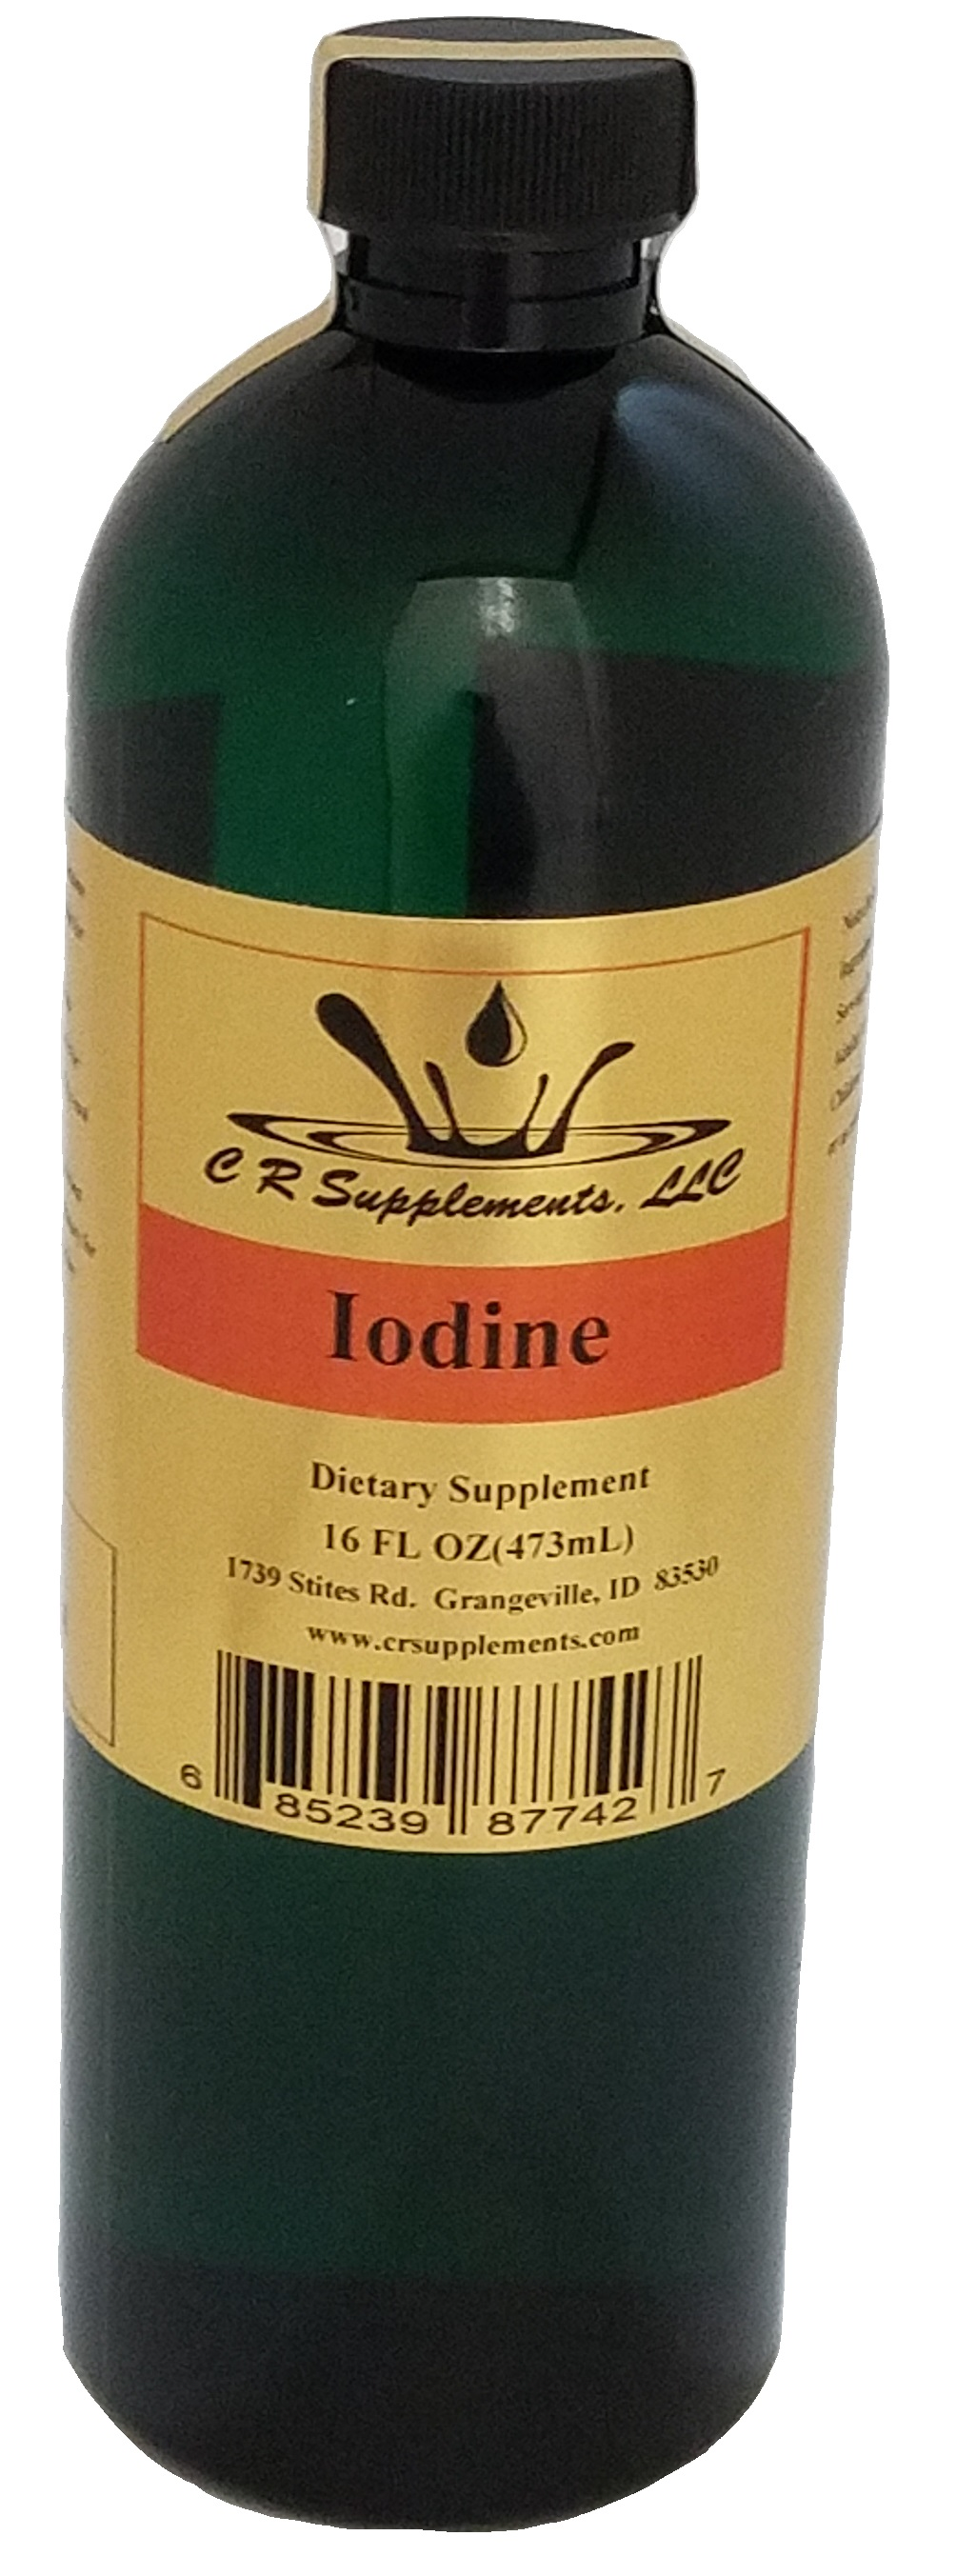 Iodine Dietary Supplement, Iodine, WaterOz Iodine Replacement, Liquid dietary supplement, Kosher of America approved, KOA approved, Pareve, vegan application, elemental mineral, flexible liquid mineral, maximum absorption